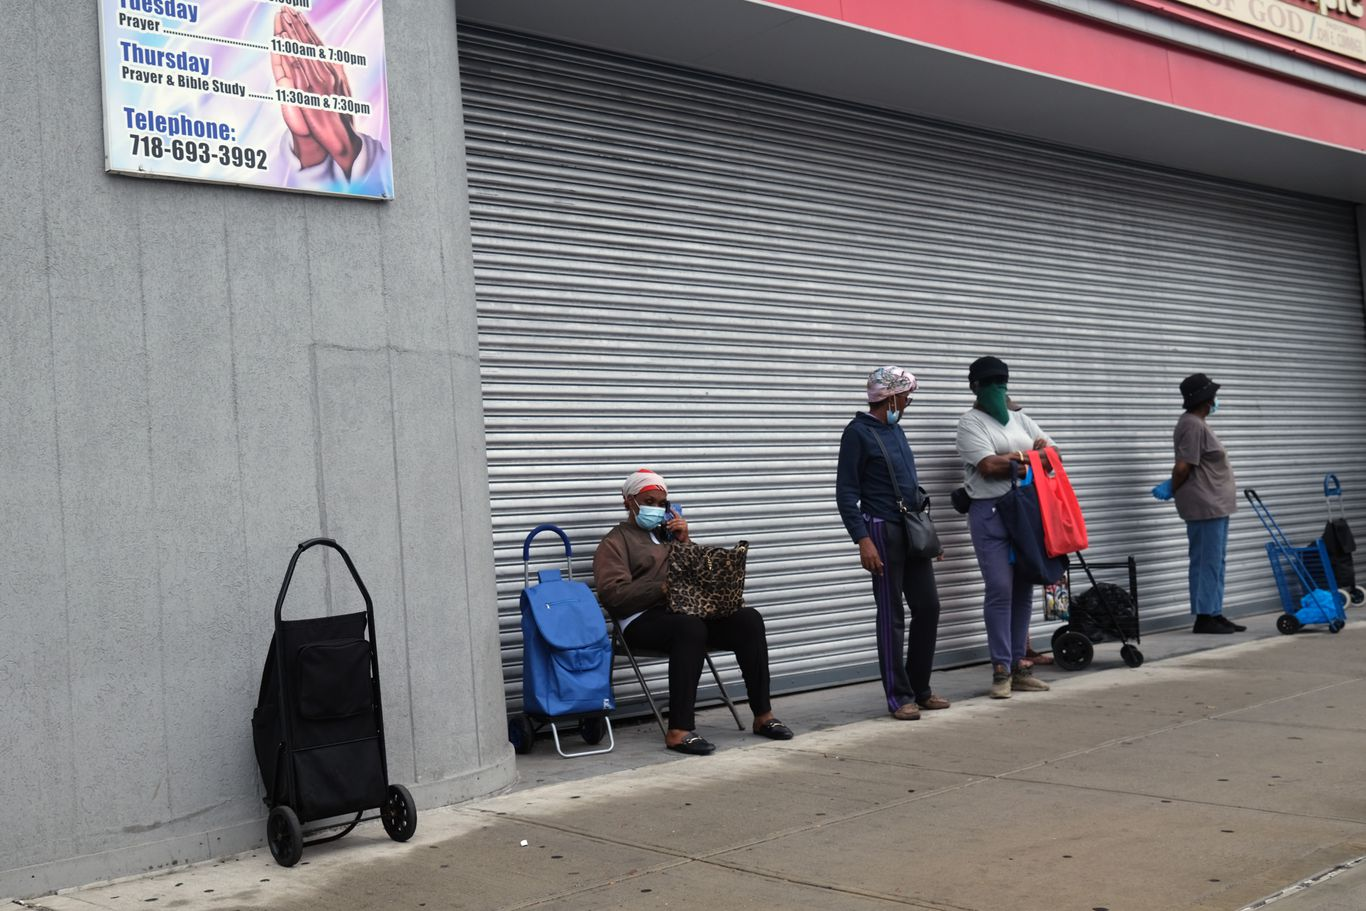 Study: 8 million Americans have fallen into poverty since May